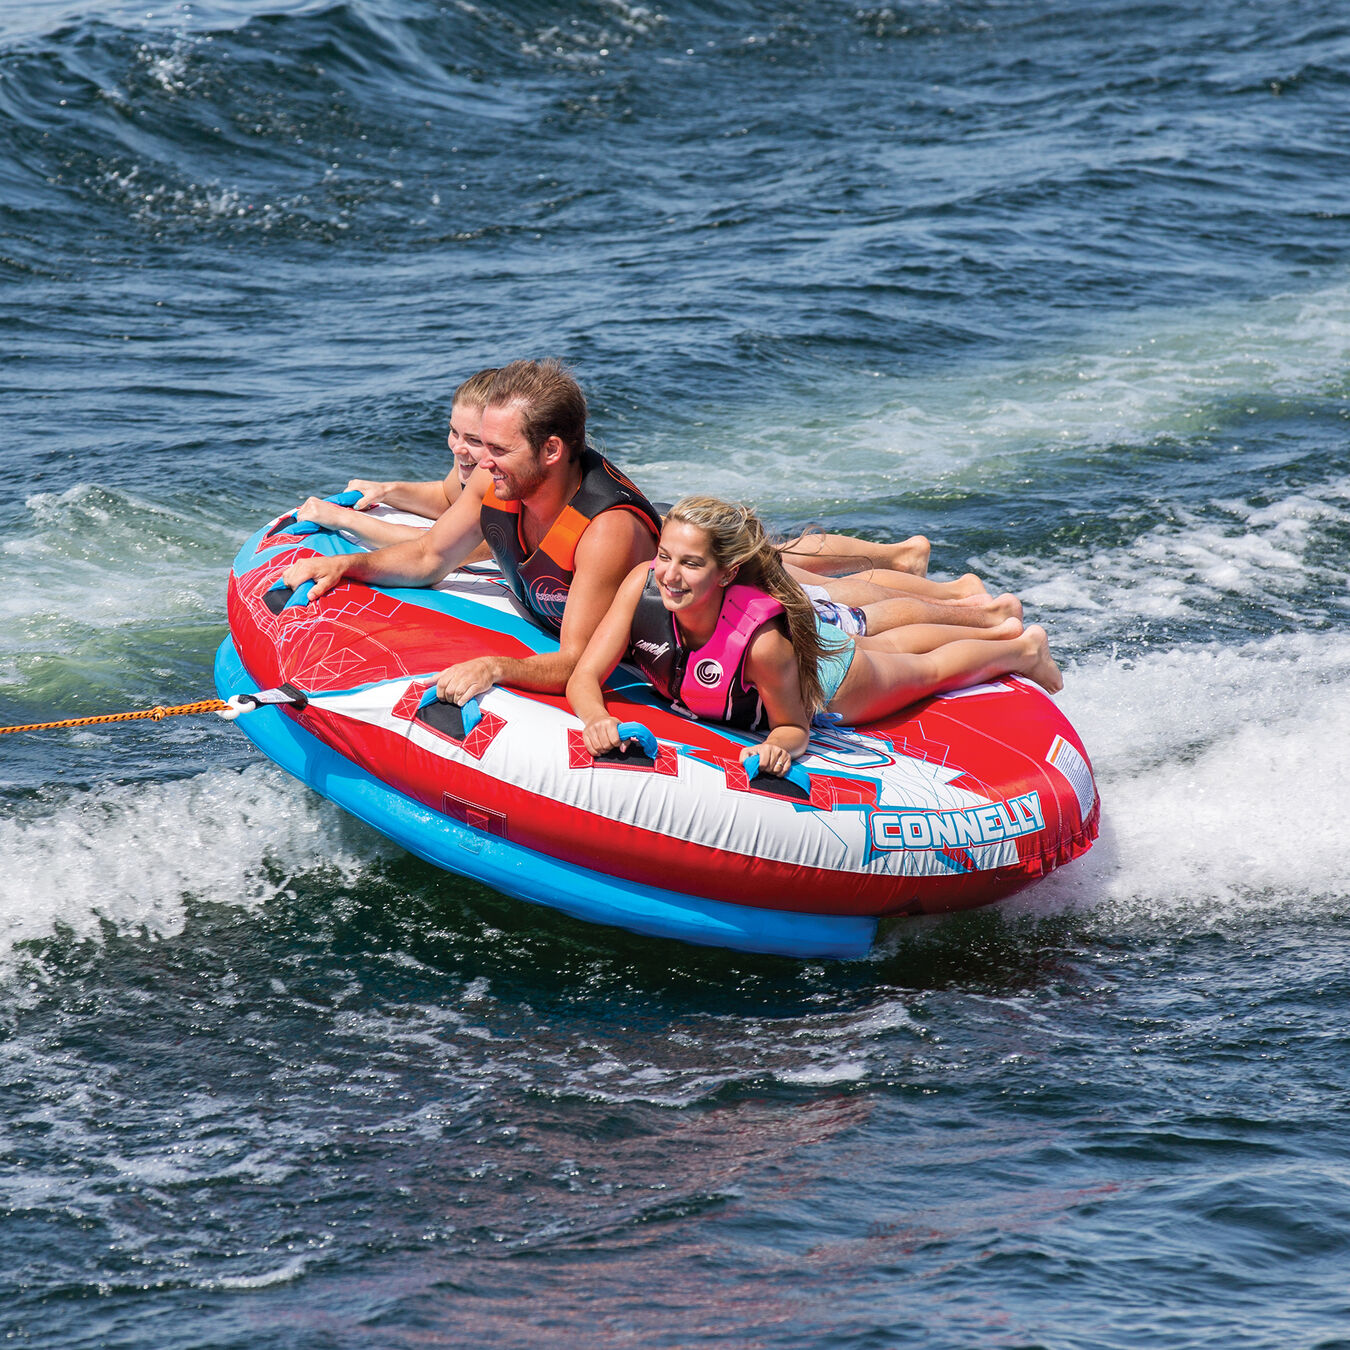 2 or 3 Person Boat Towable Tube Connelly MACH 3